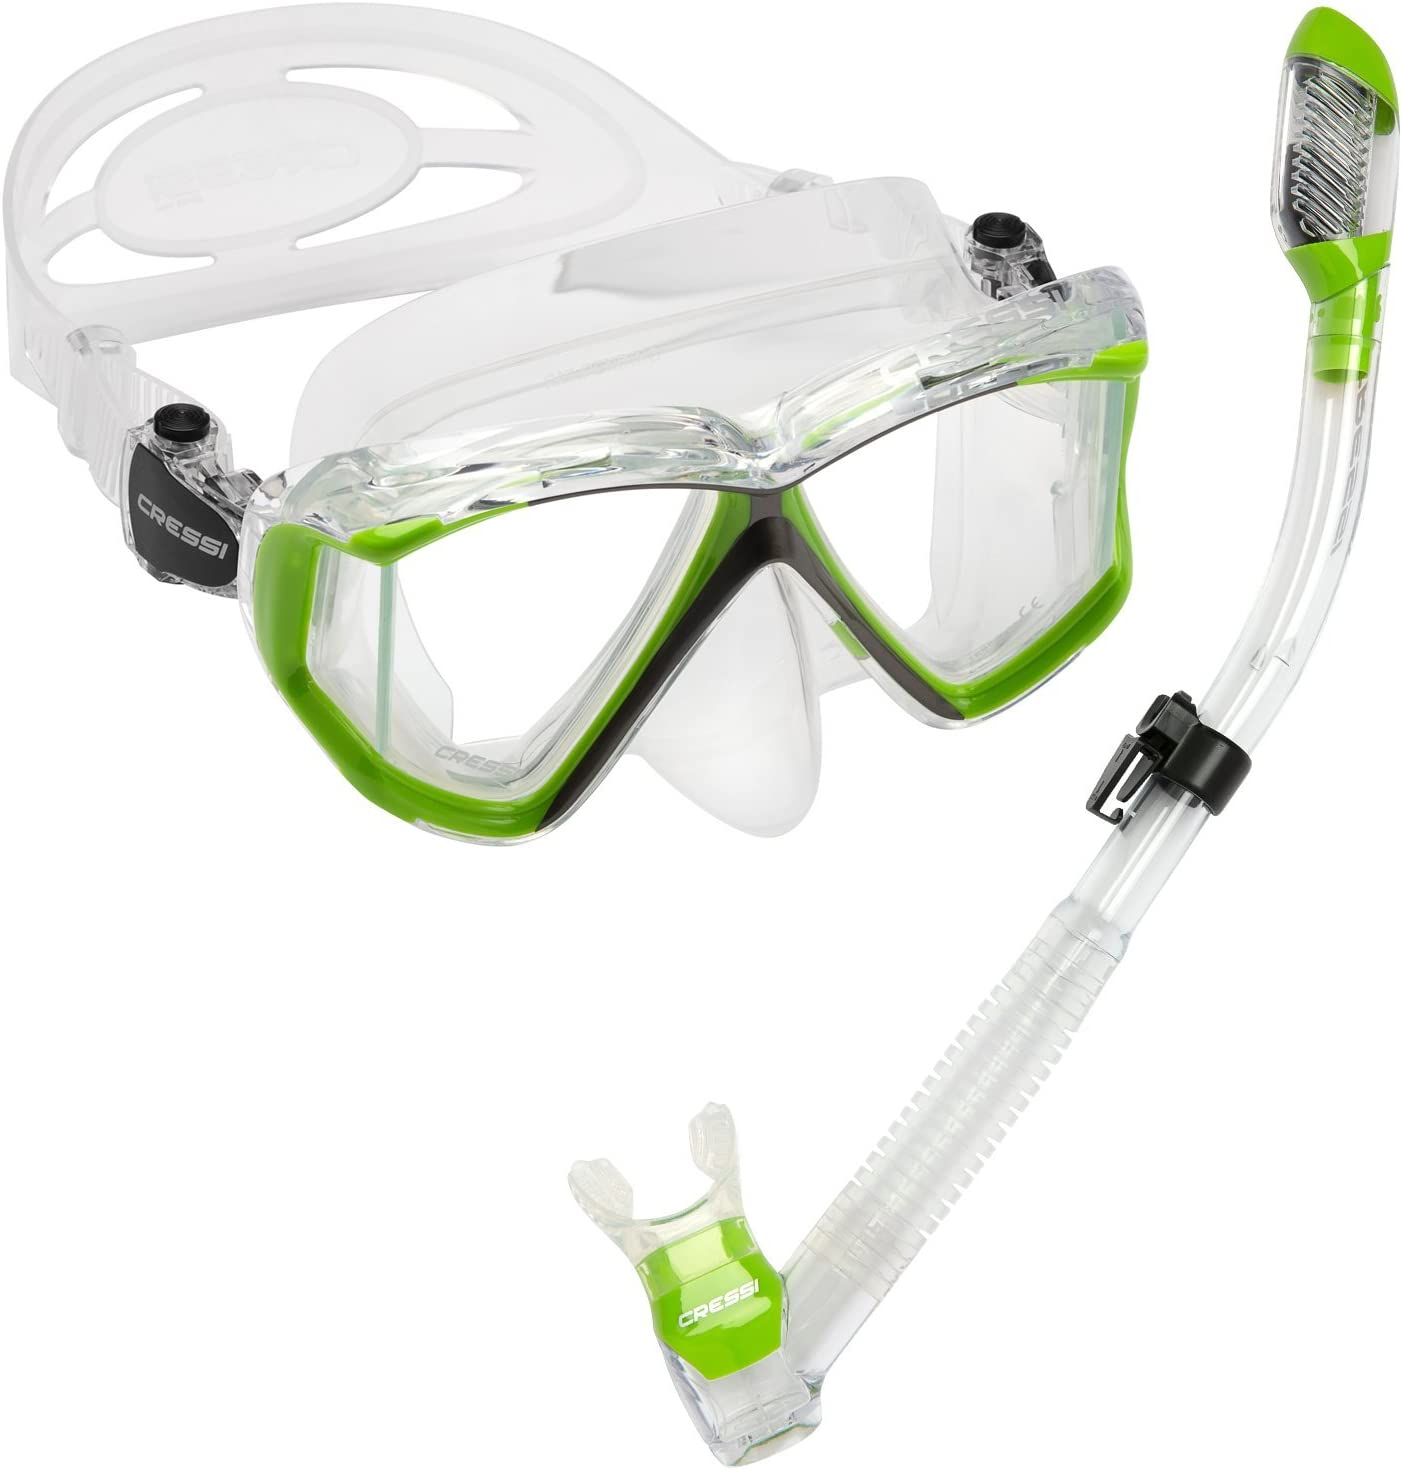 Cressi Panoramic Wide Max 63% OFF View Mask Snorkel Kit 35% OFF Dry for Snorkeling